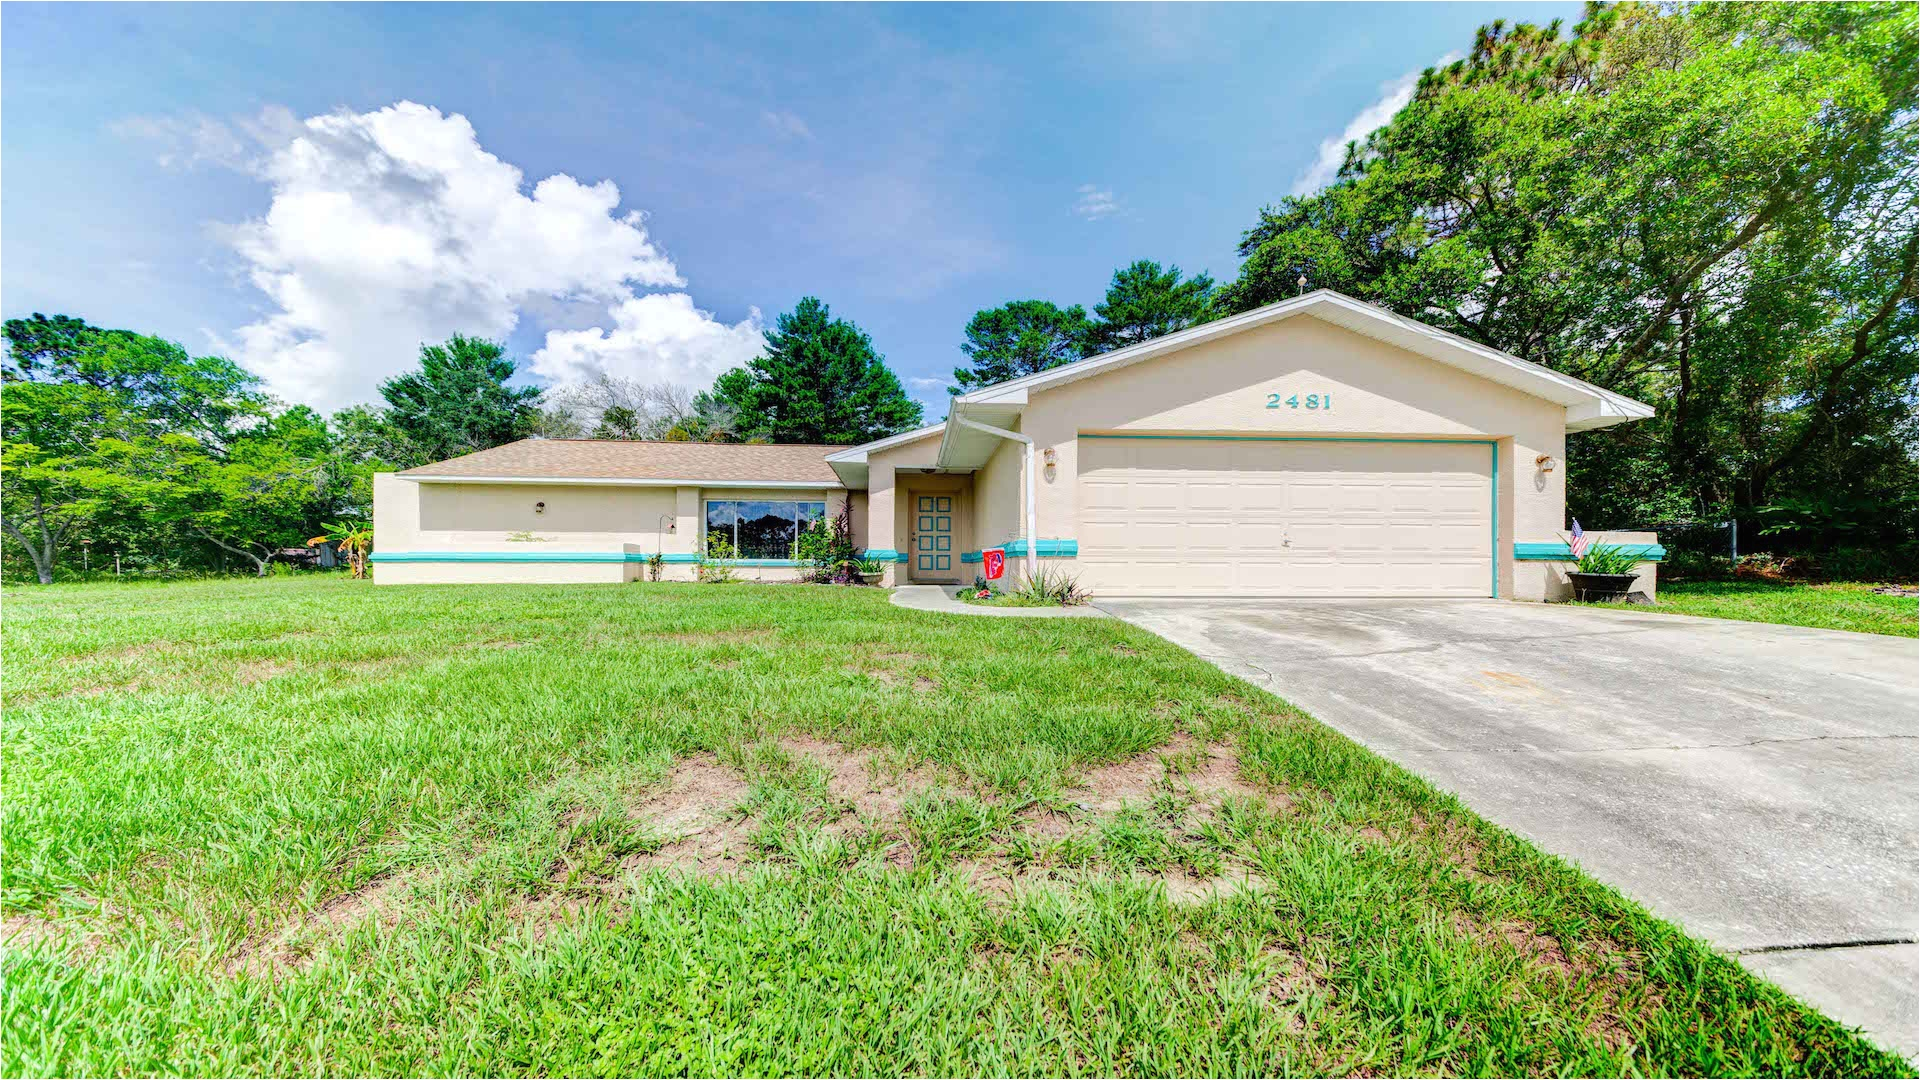 1 2841 whitewood ave spring hill fl 22 of 29front view 07 01 2016 03 26 28 10